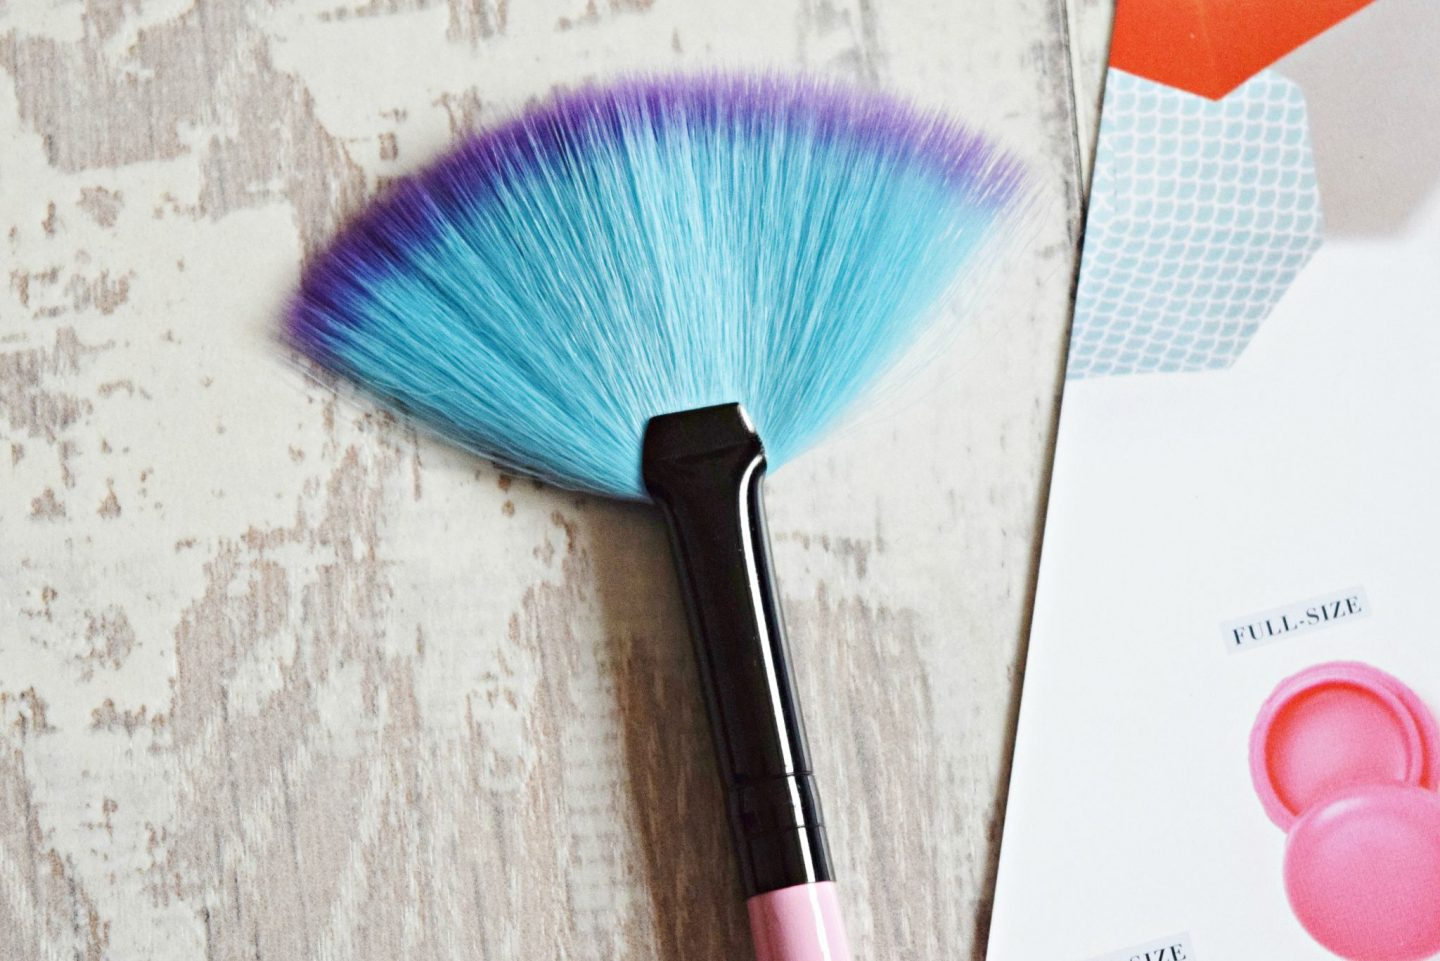 Spectrum Small Fan A10 brush